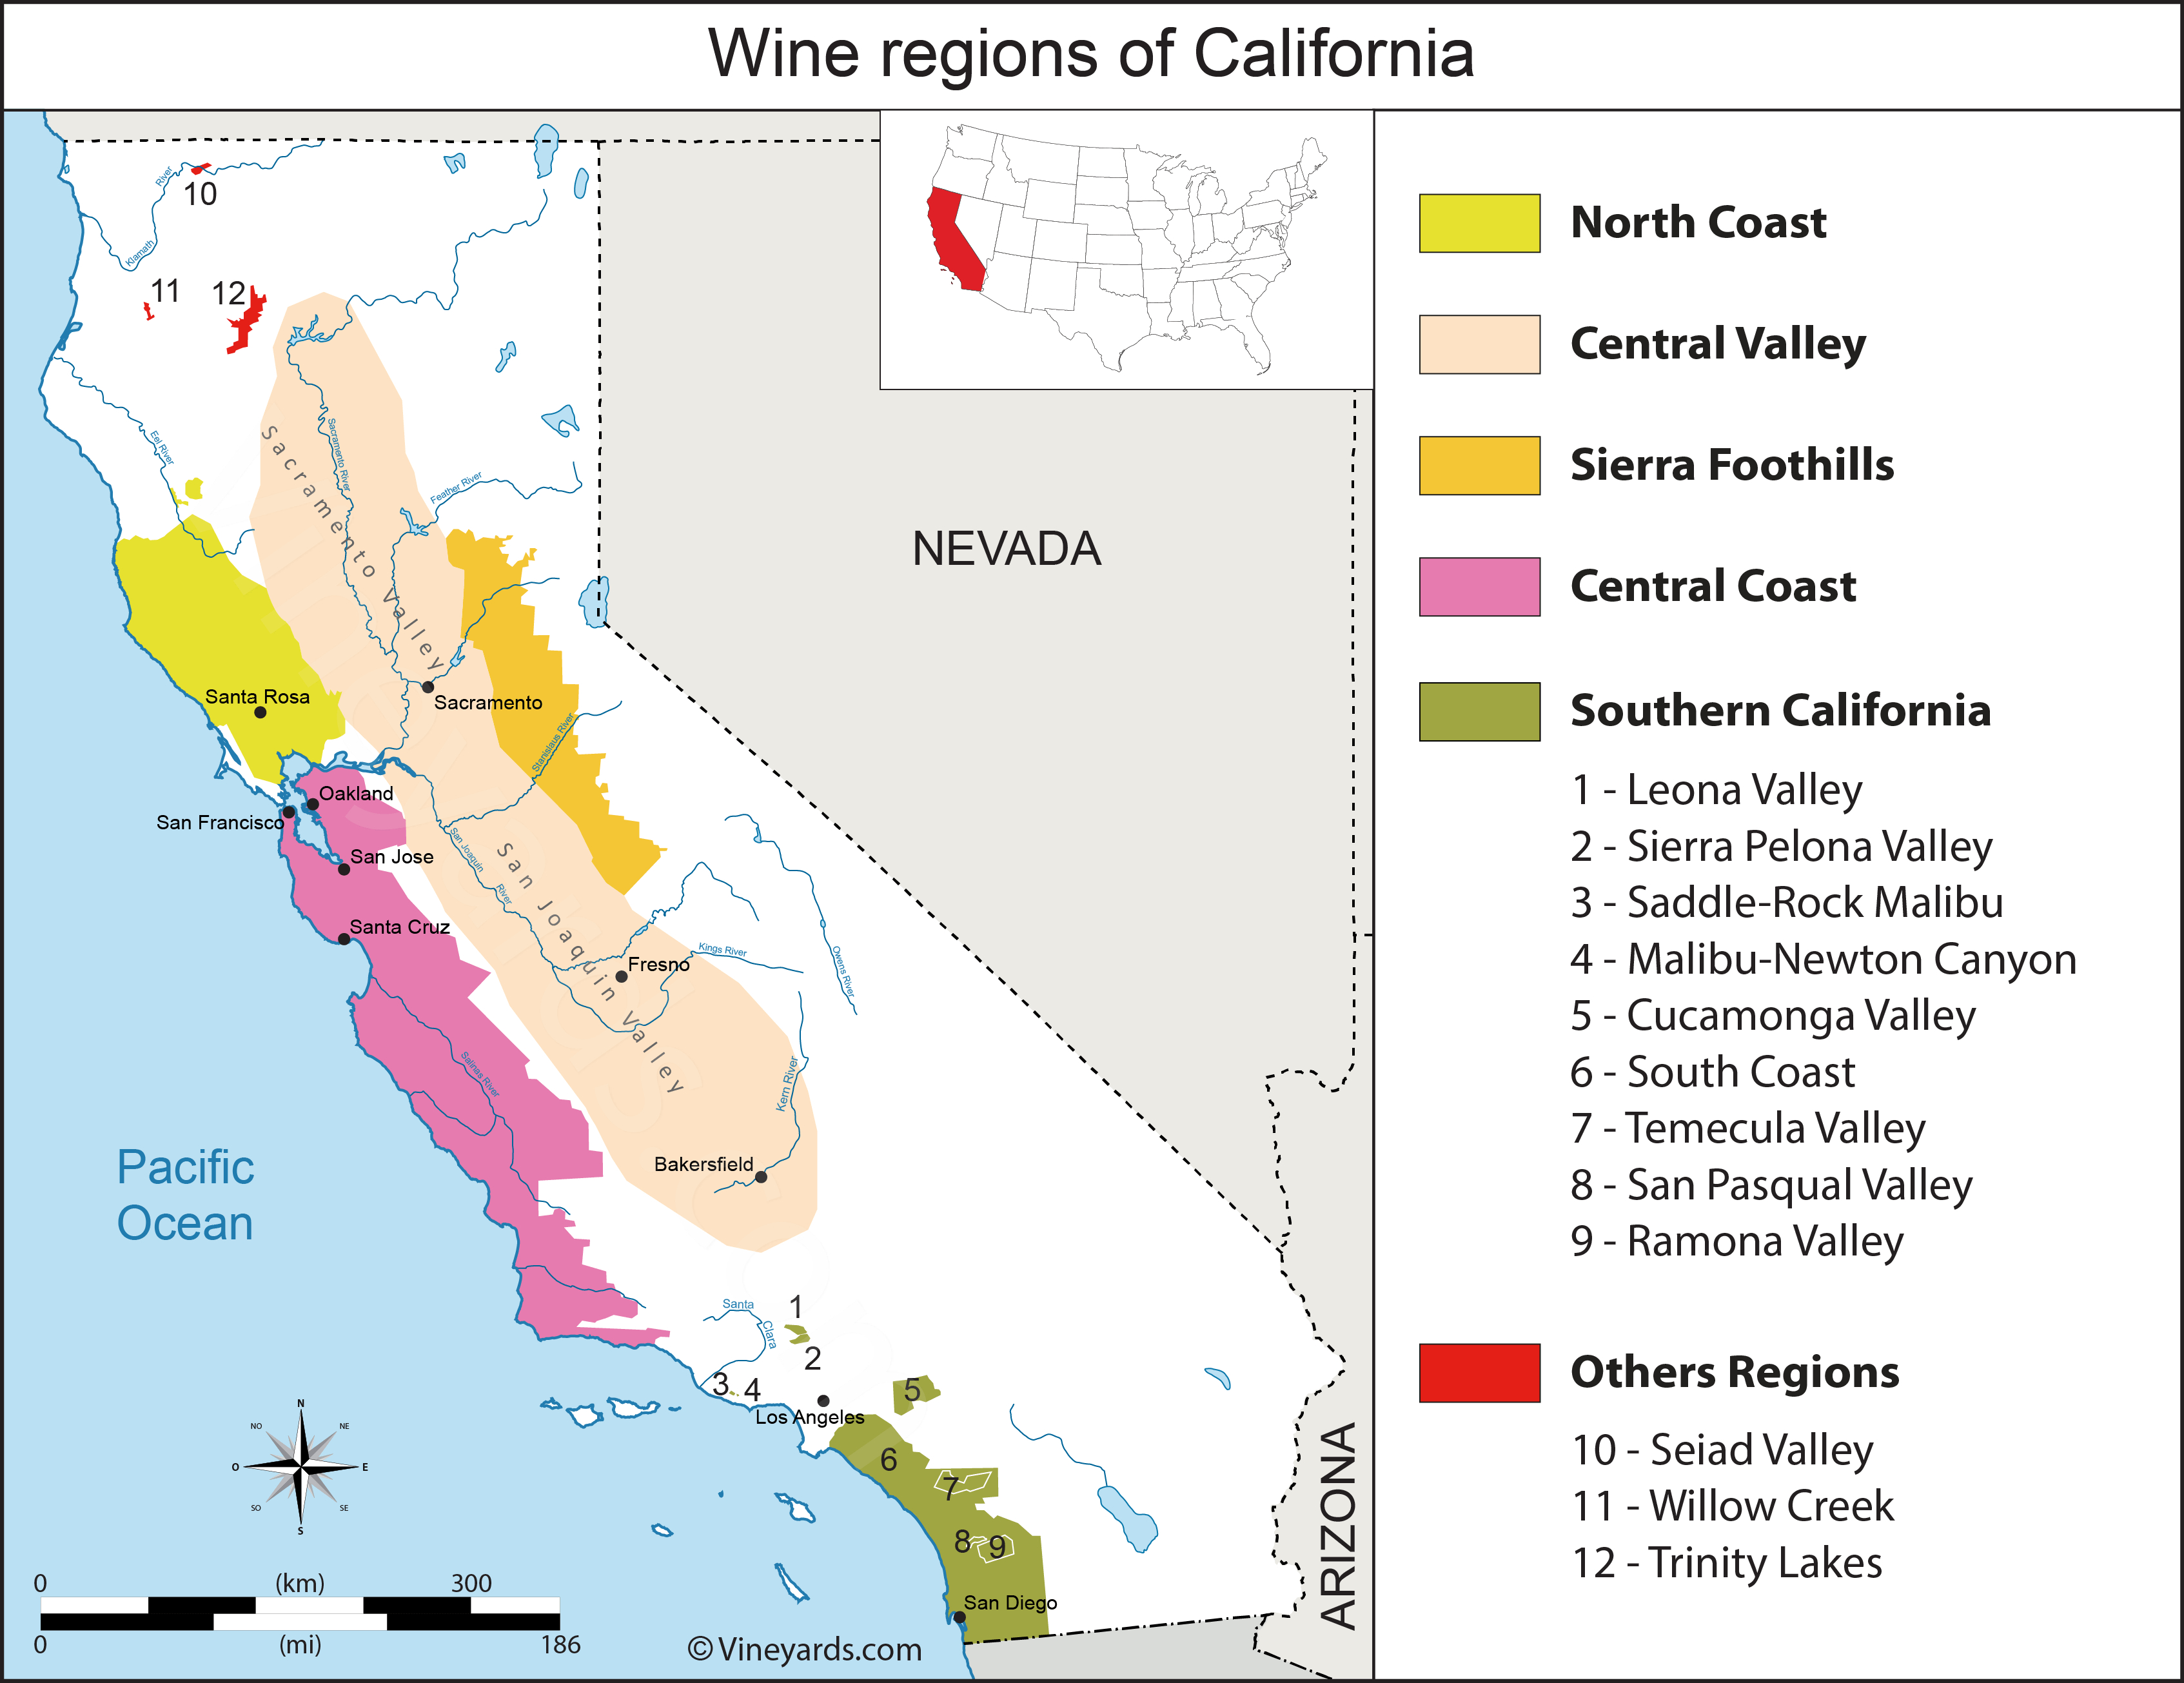 United States Map Of Vineyards Wine Regions - California Wine Country Map